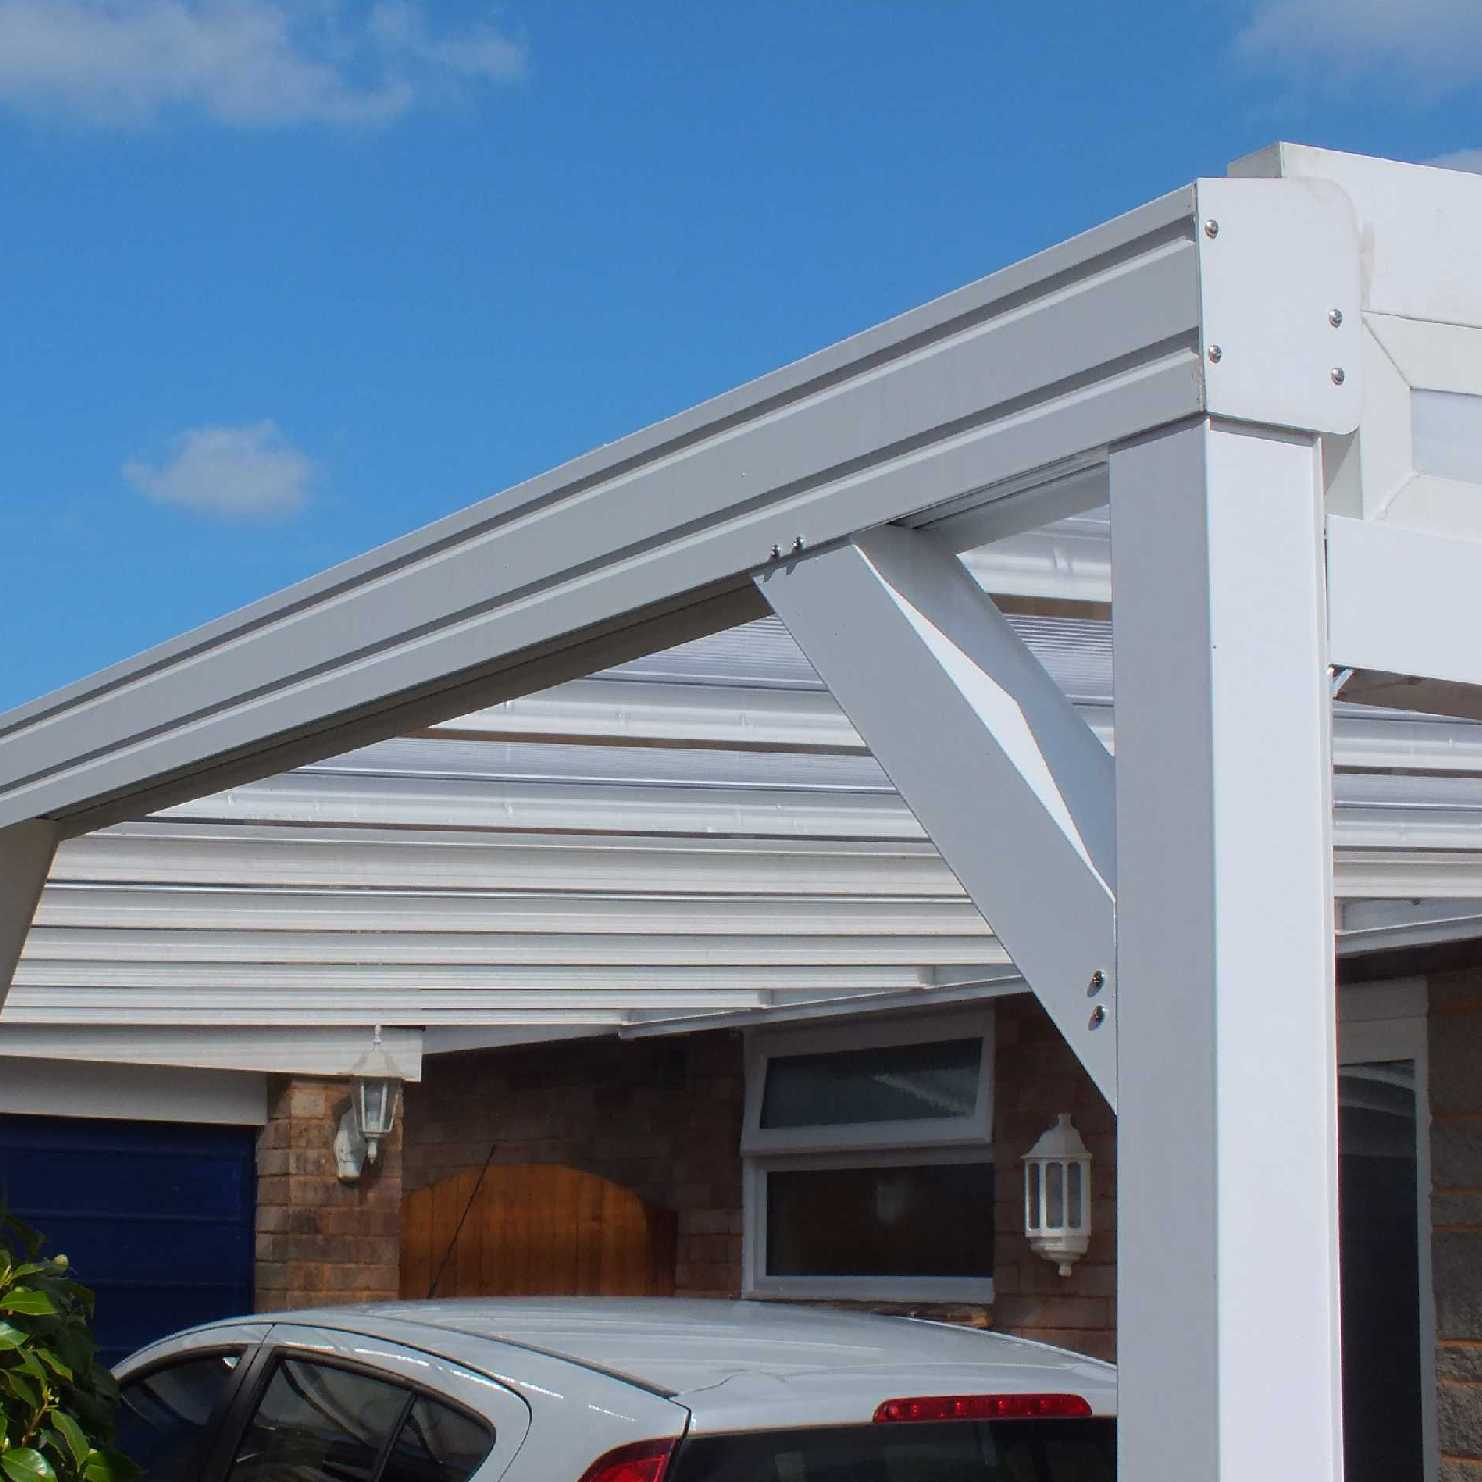 Buy Omega Smart White Lean-To Canopy with 16mm Polycarbonate Glazing - 6.3m (W) x 4.0m (P), (4) Supporting Posts online today